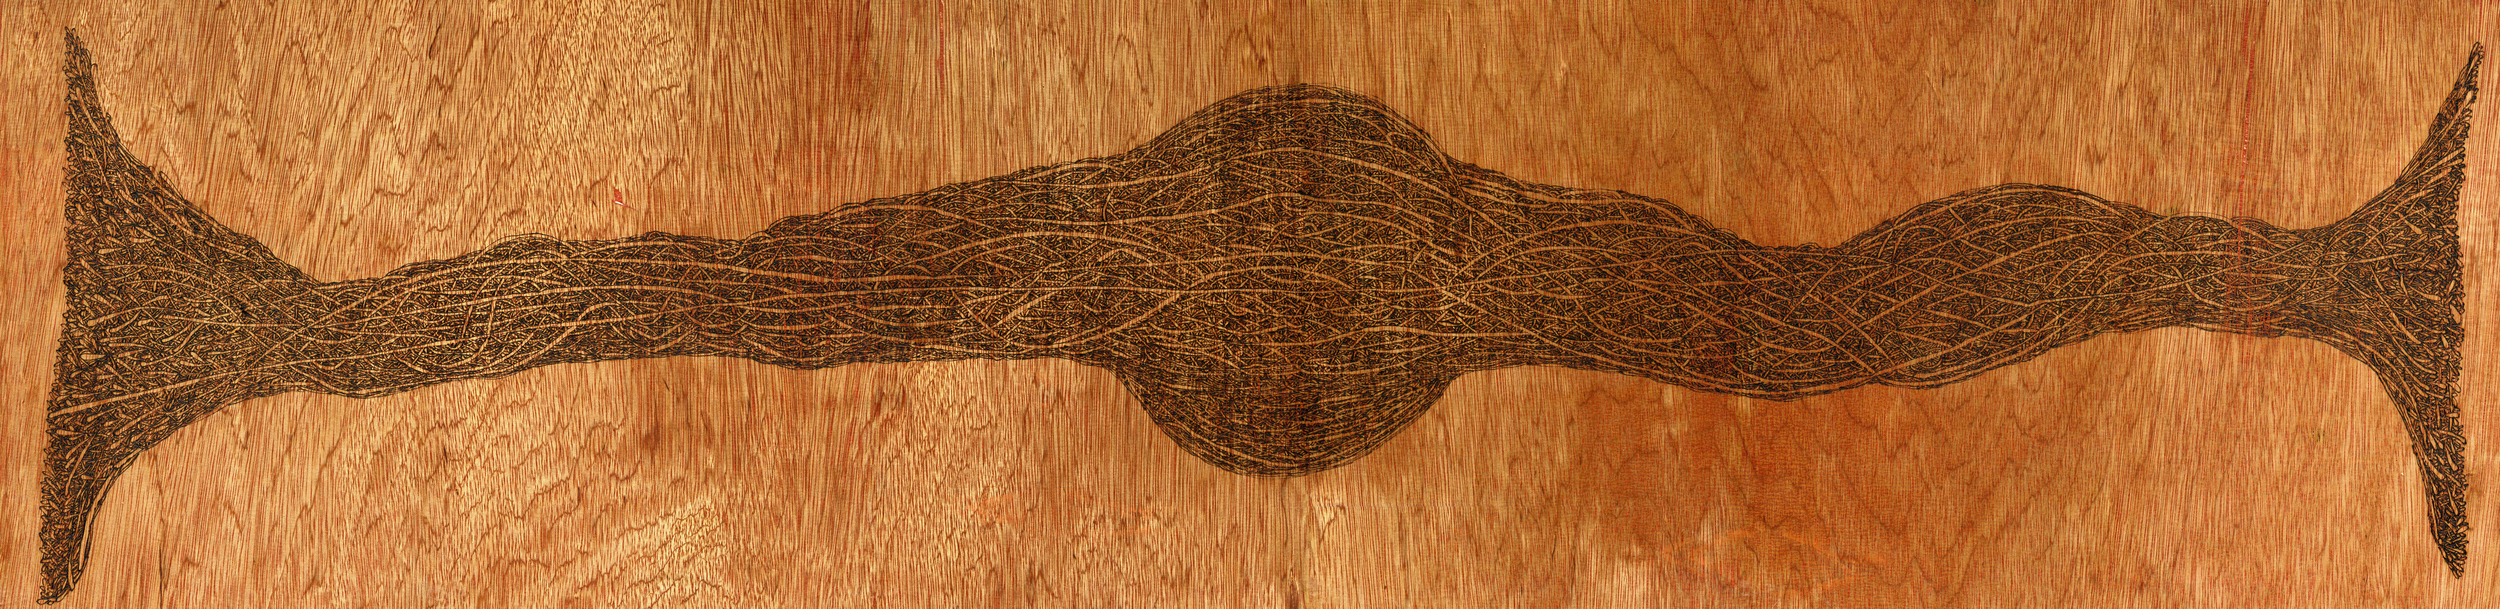 Unlimited Potential (2015)  Wood Burning on Pine Wood 49 in x 2½ in x 12 ½ in  SOLD